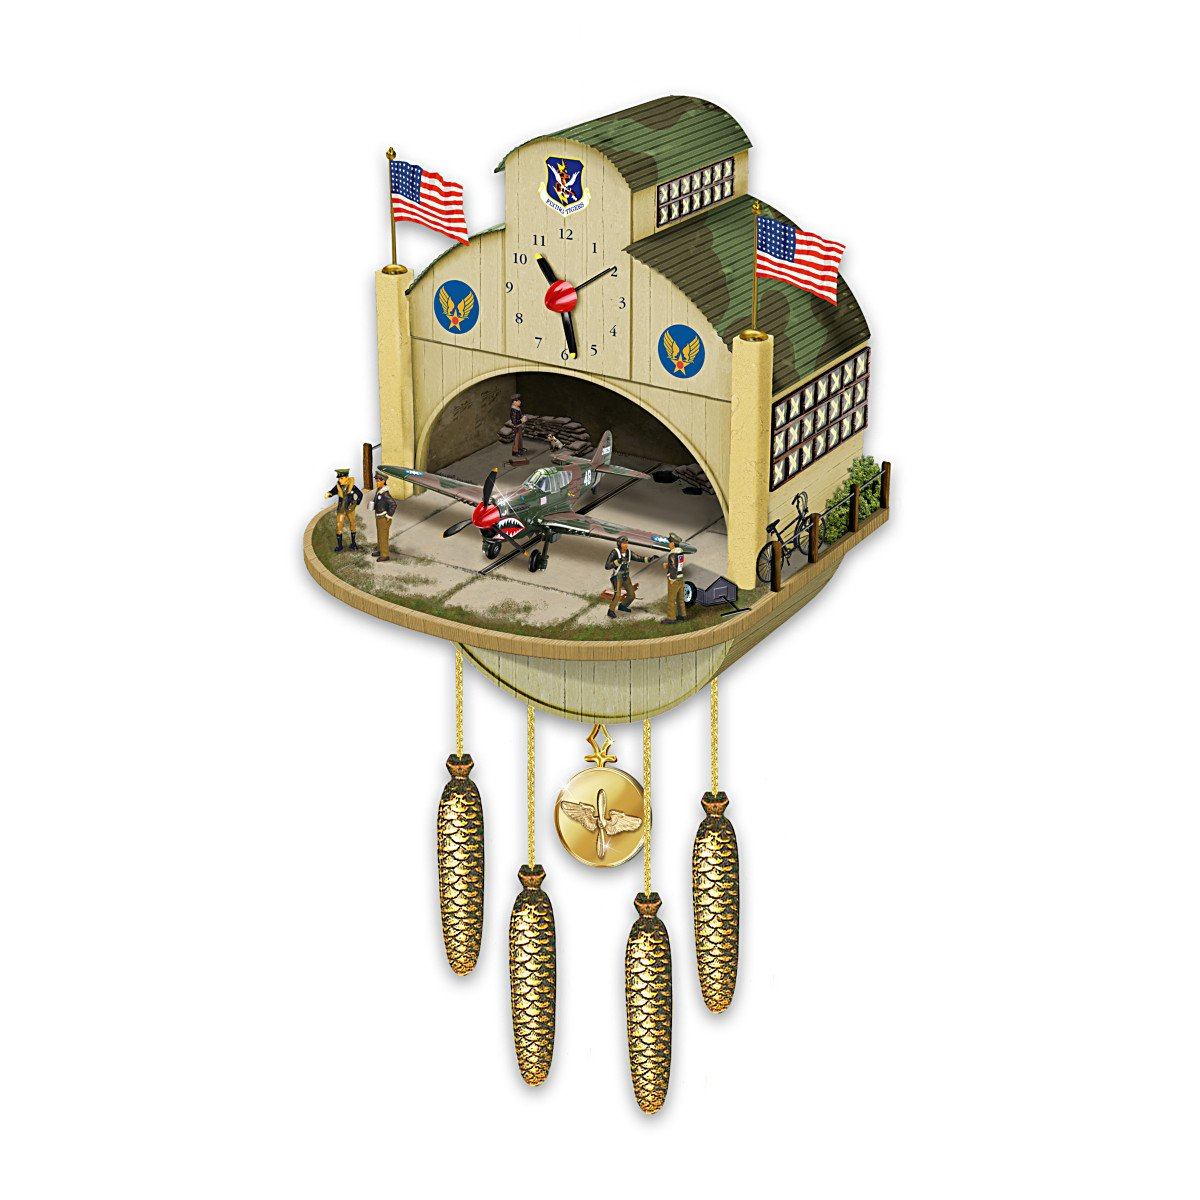 Cuckoo Clock: P-40 Flying Tiger Cuckoo Clock by The Bradford Exchange